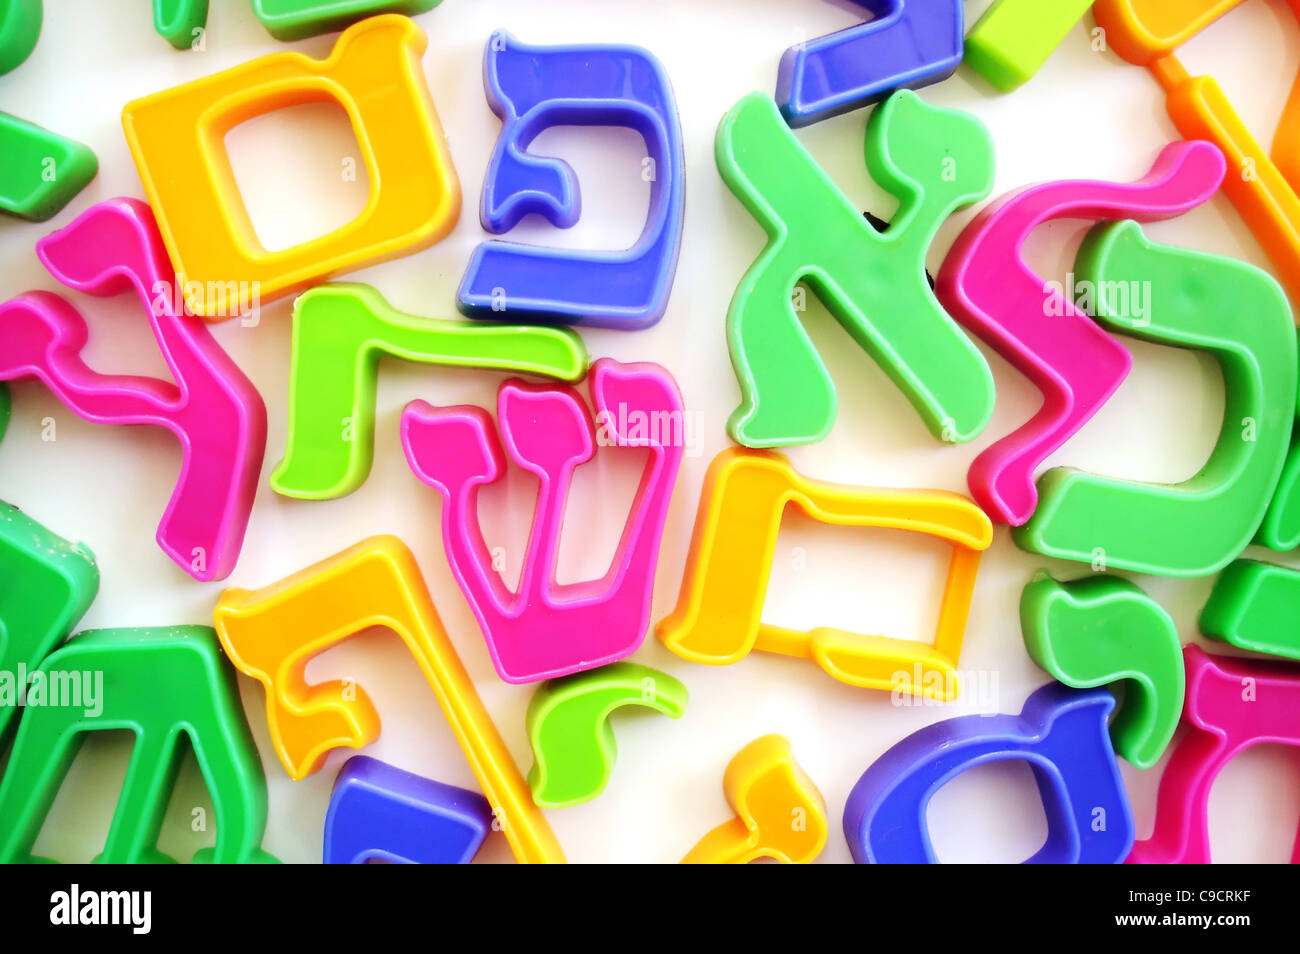 The Hebrew alphabet letters on a fridge which help children to spell. - Stock Image